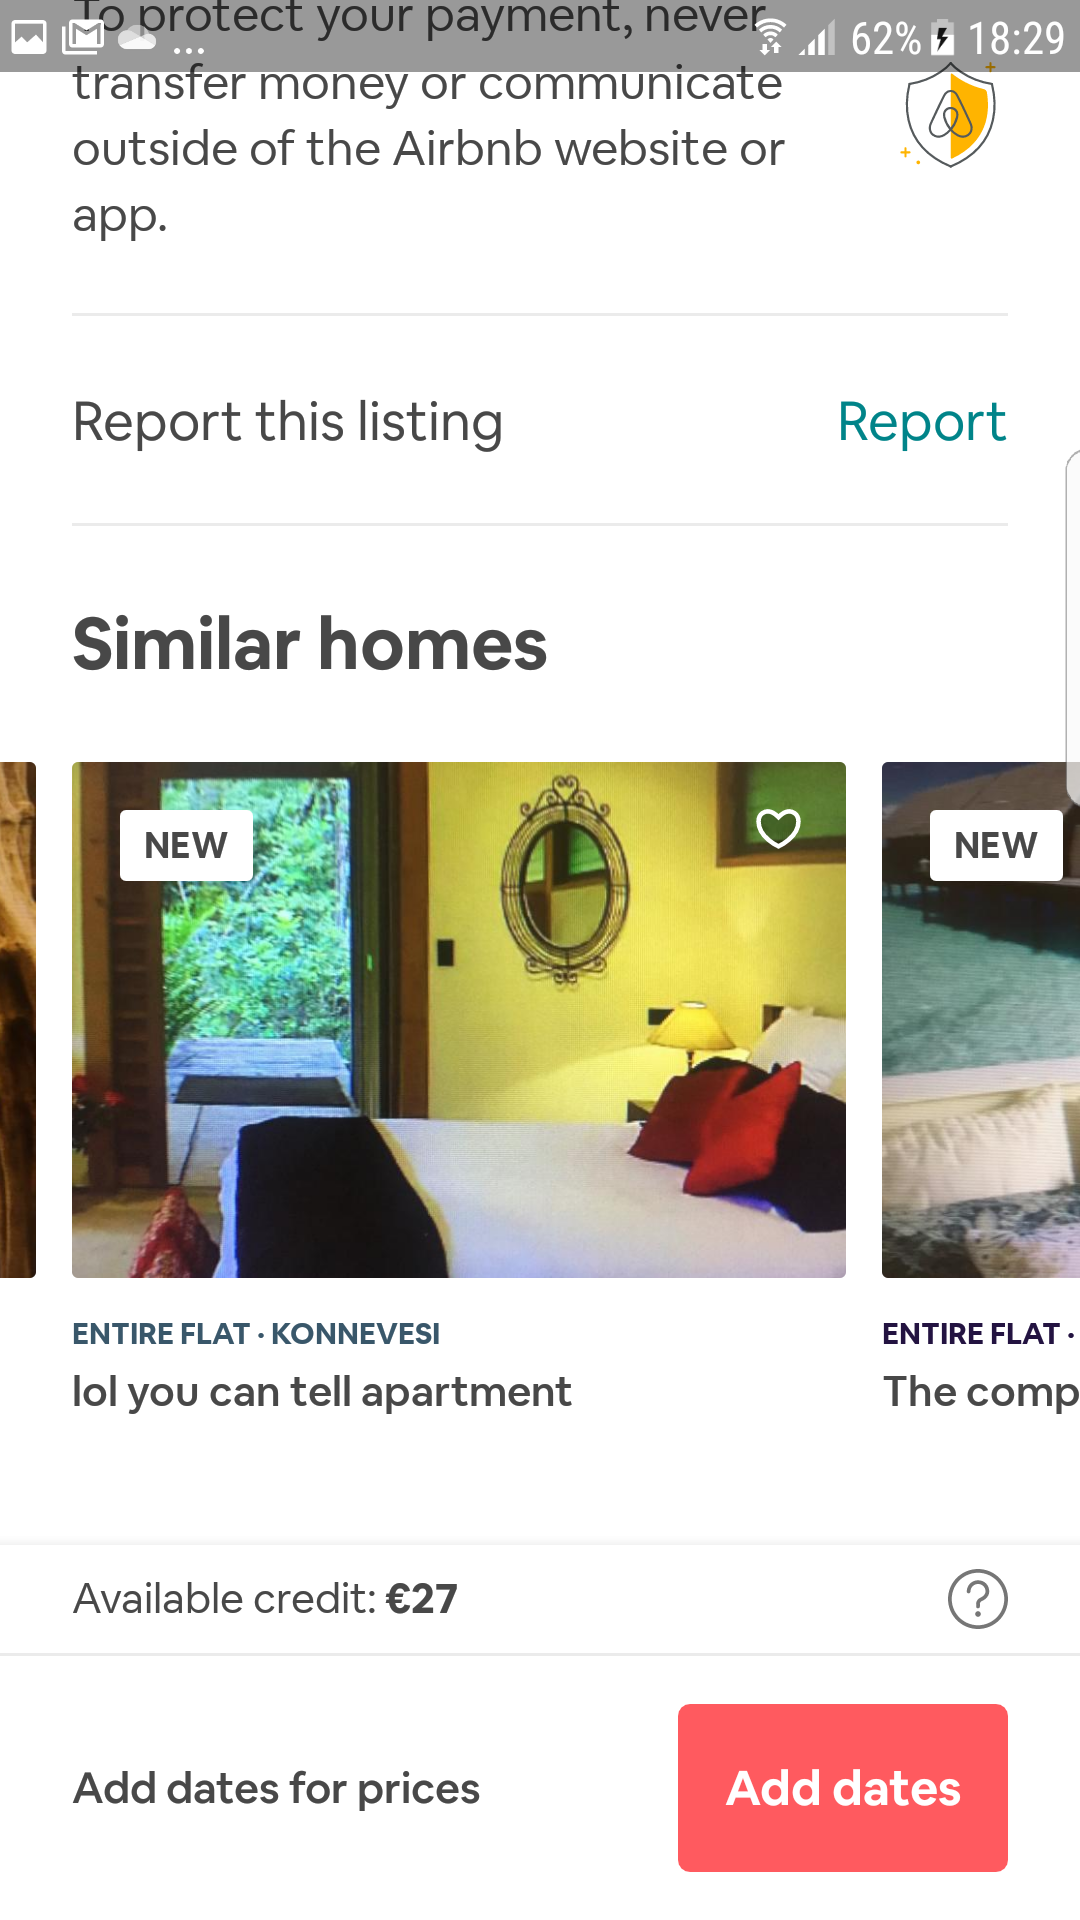 ACCOUNT HACKED! - Airbnb Community